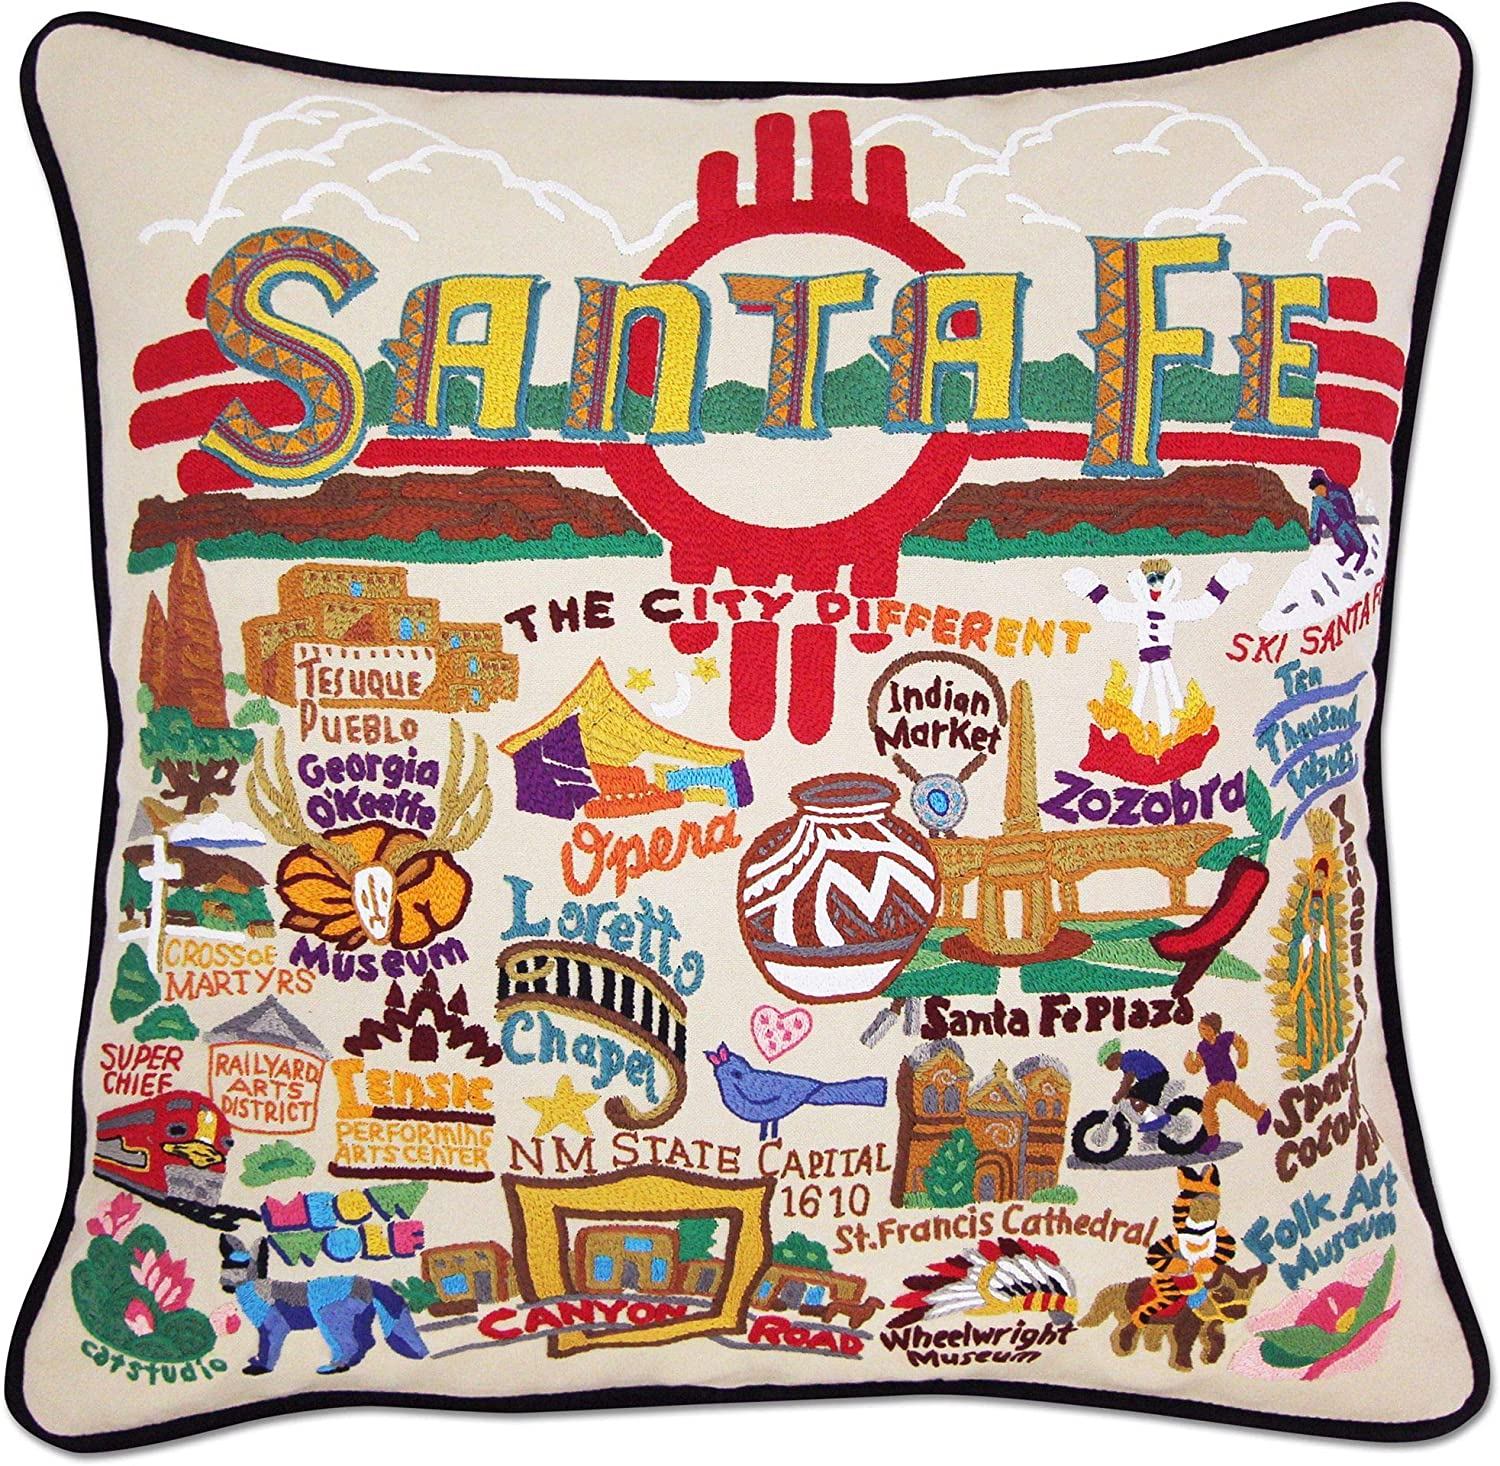 Japan's largest assortment Catstudio Santa Fe Colorado Springs Mall Embroidered Pillow Decorative Throw